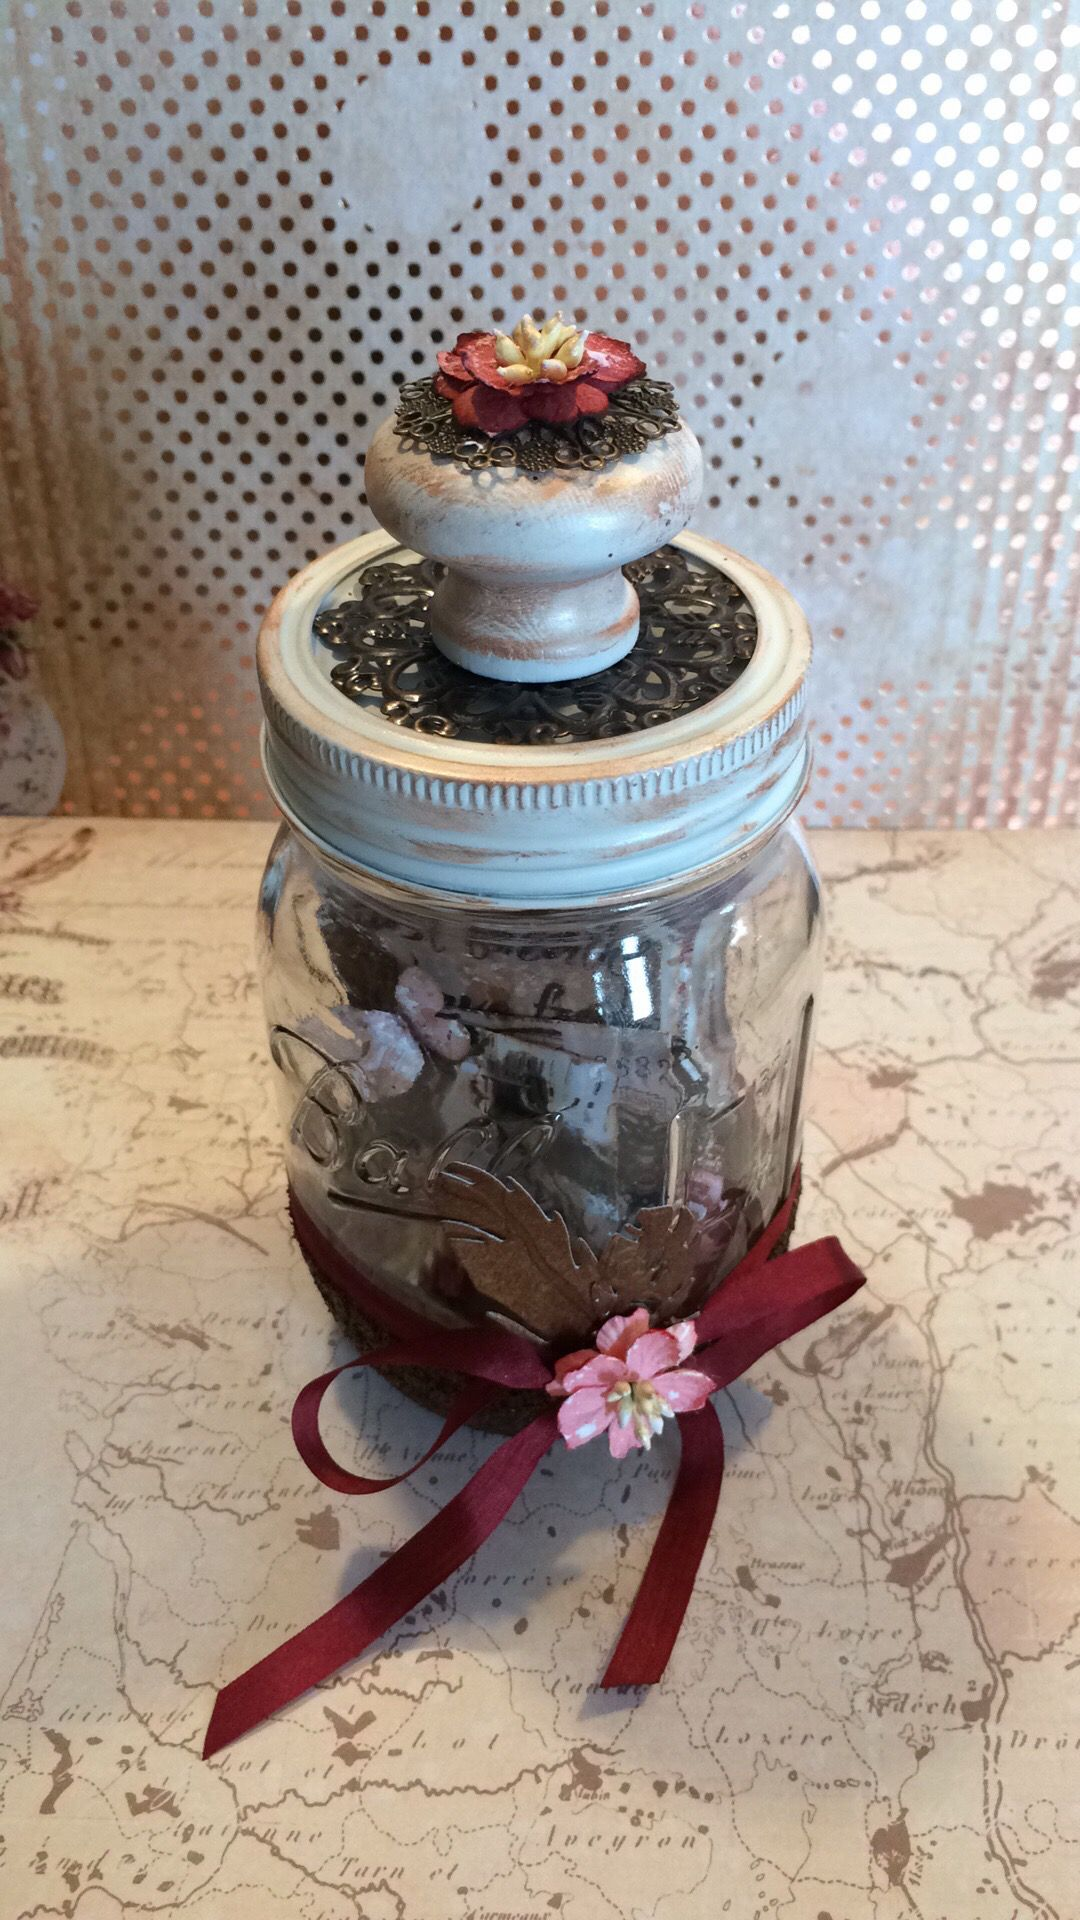 Mini album i mason jar